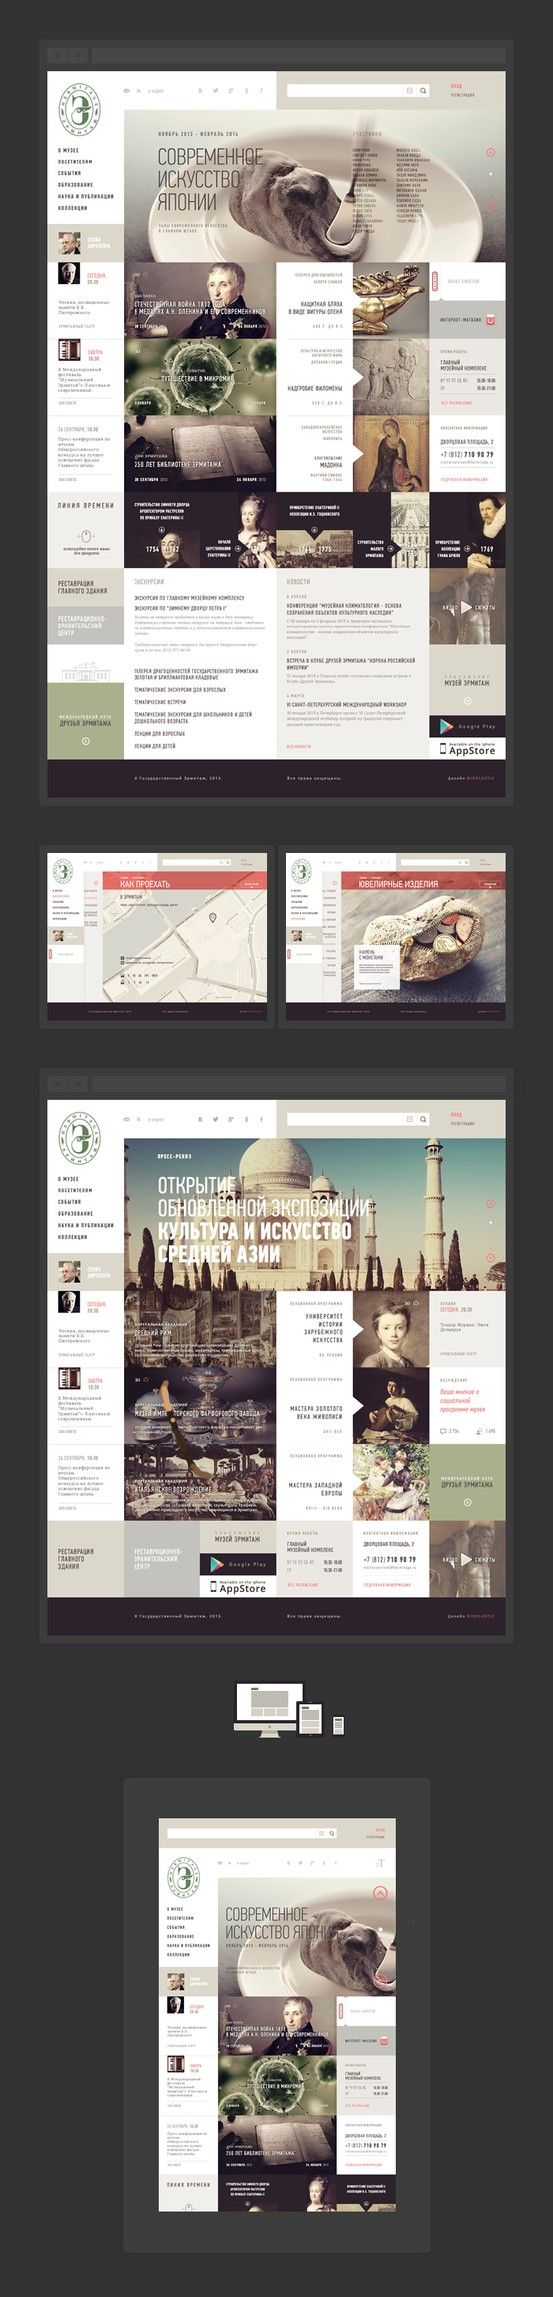 Website design layout. Inspirational UX/UI design sample.  Visit us at: www.sodapopmedia.com #WebDesign #UX #UI #WebPageLayout #DigitalDesign #Web #Website #Design #Layout